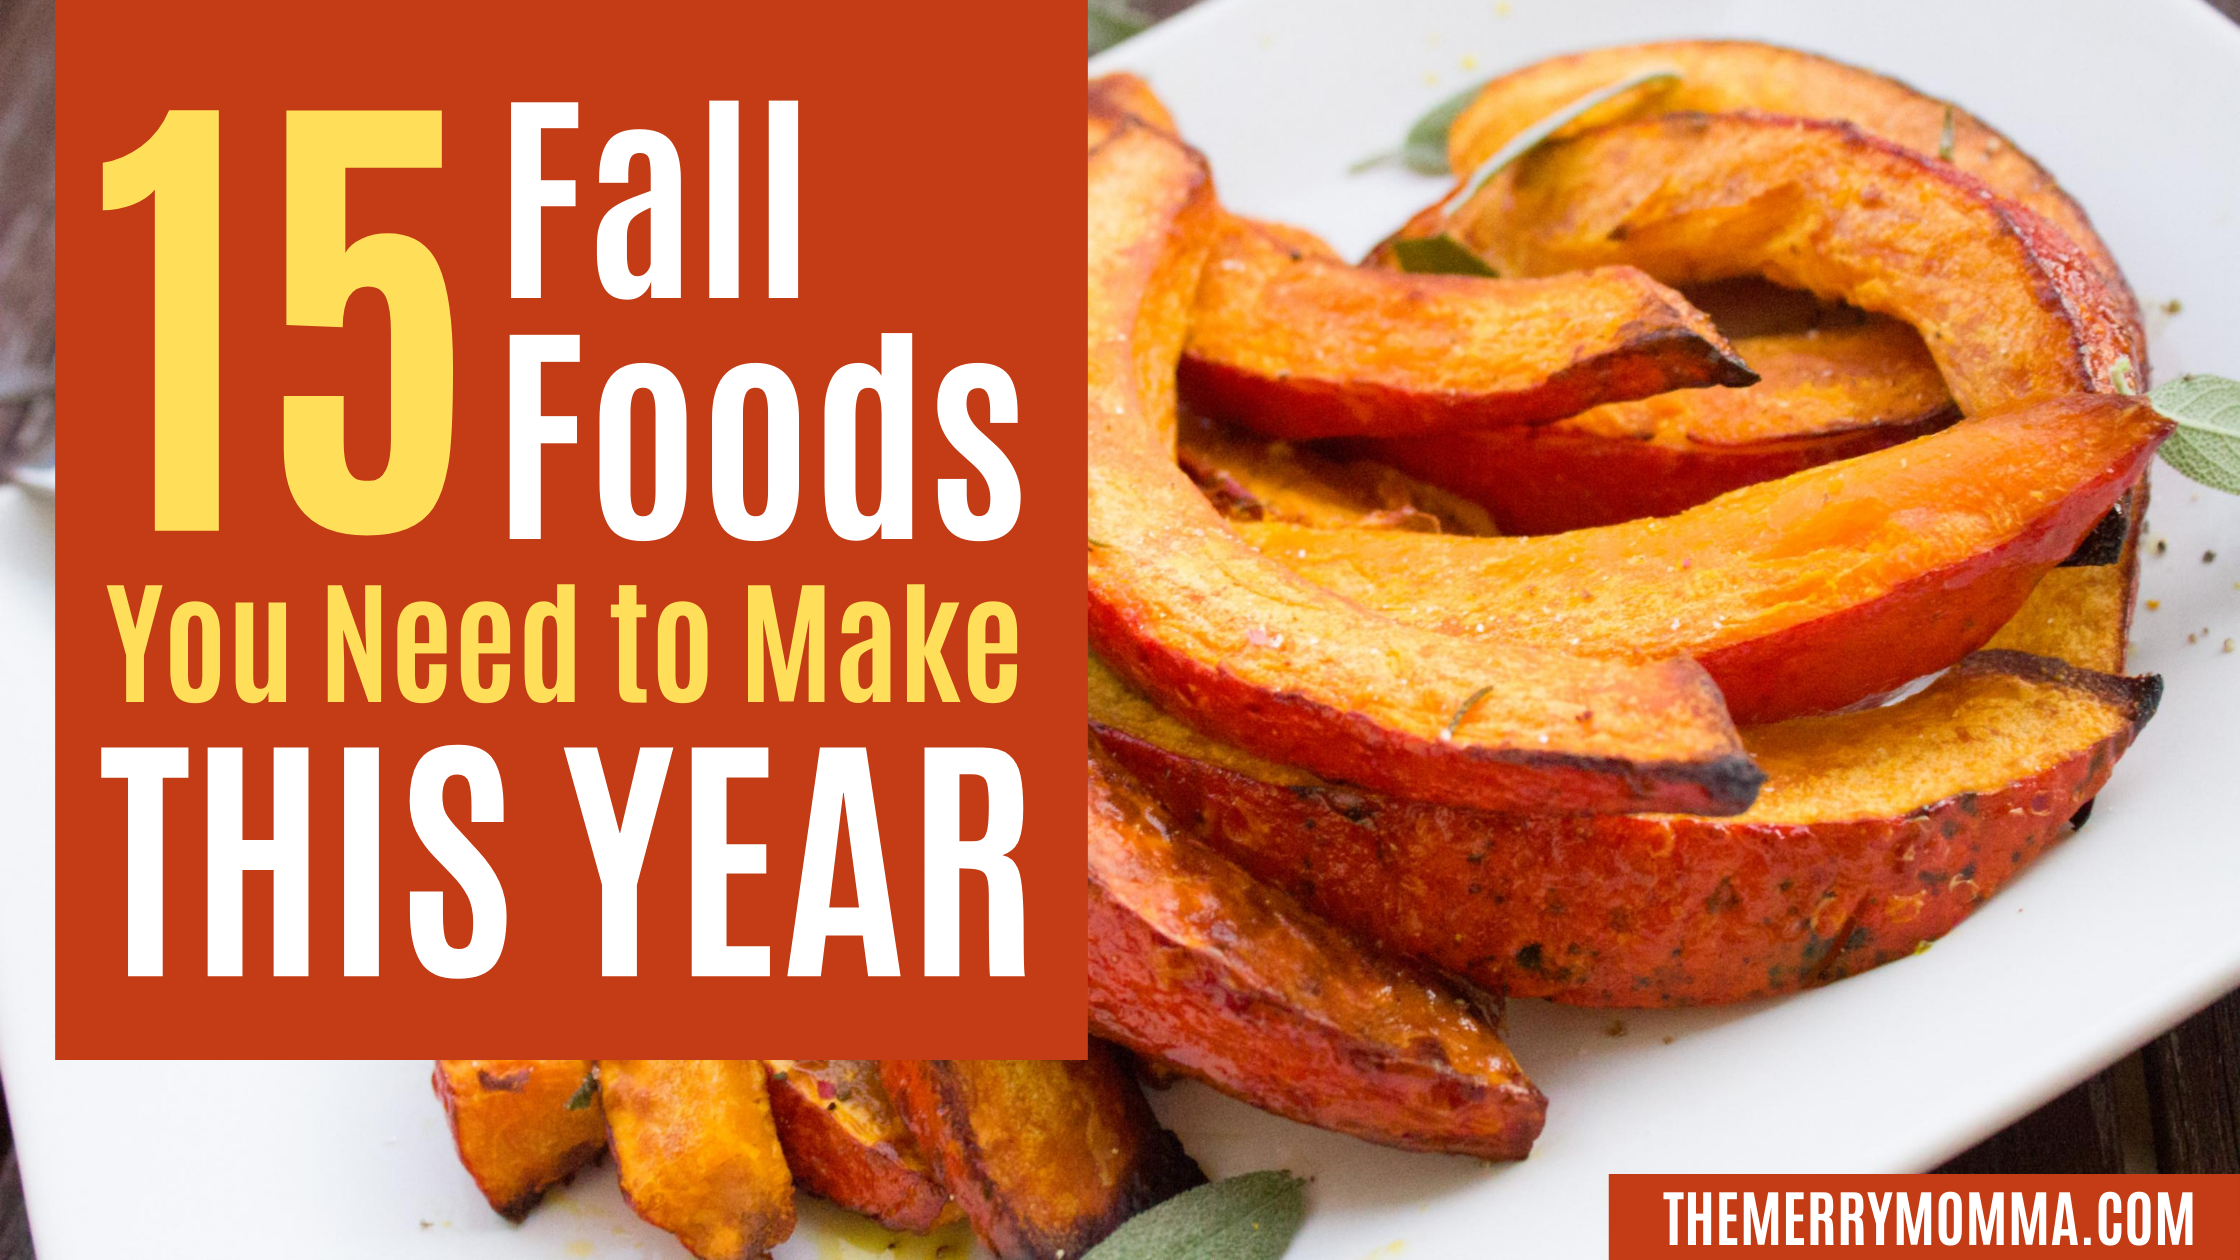 15 Fall Foods You Need to Make This Year | The Merry Momma